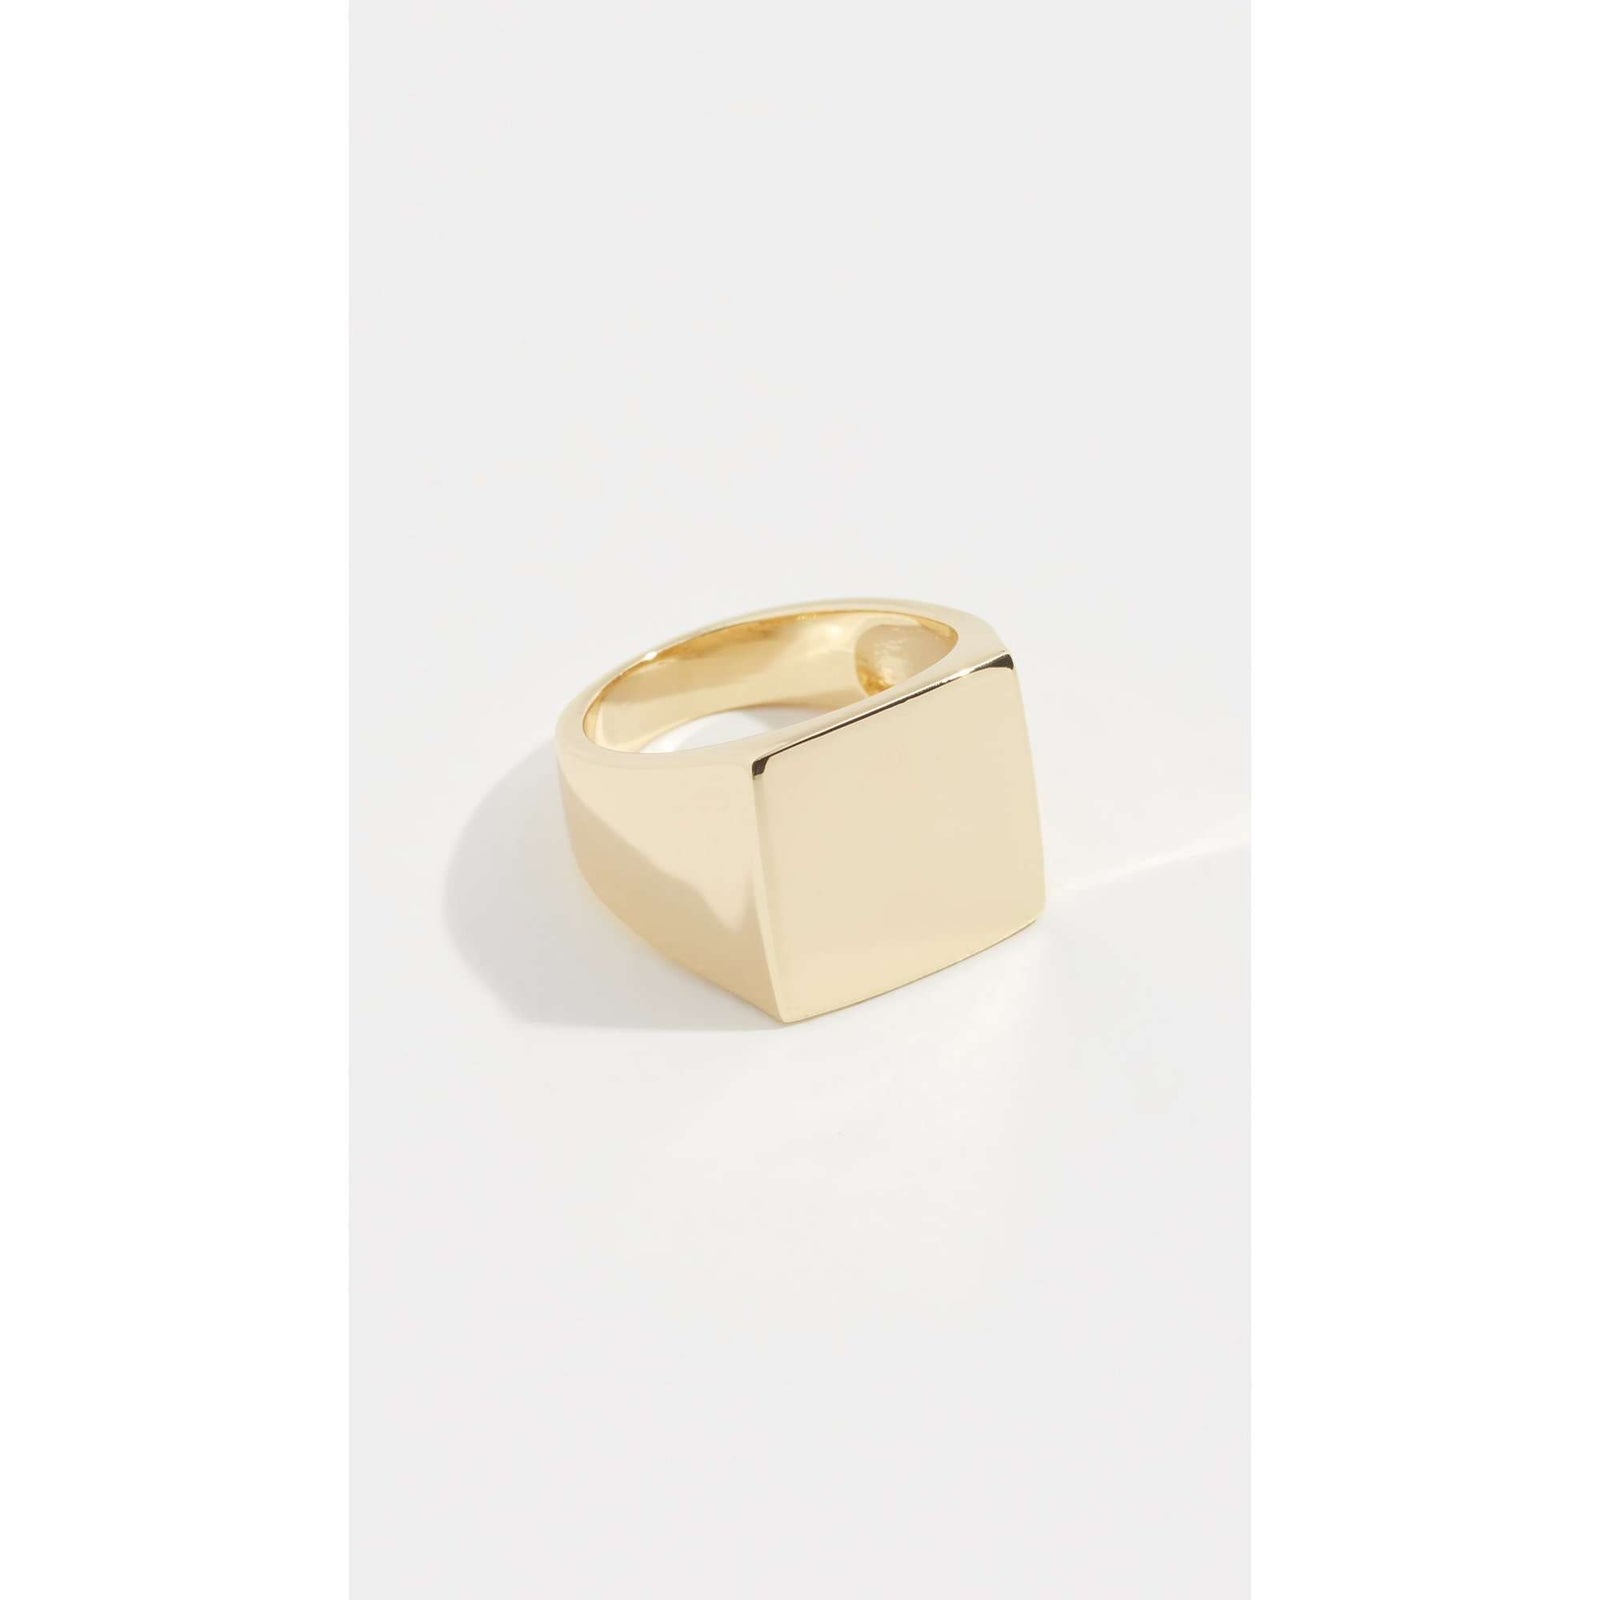 square-signet-ringrings-jewelry